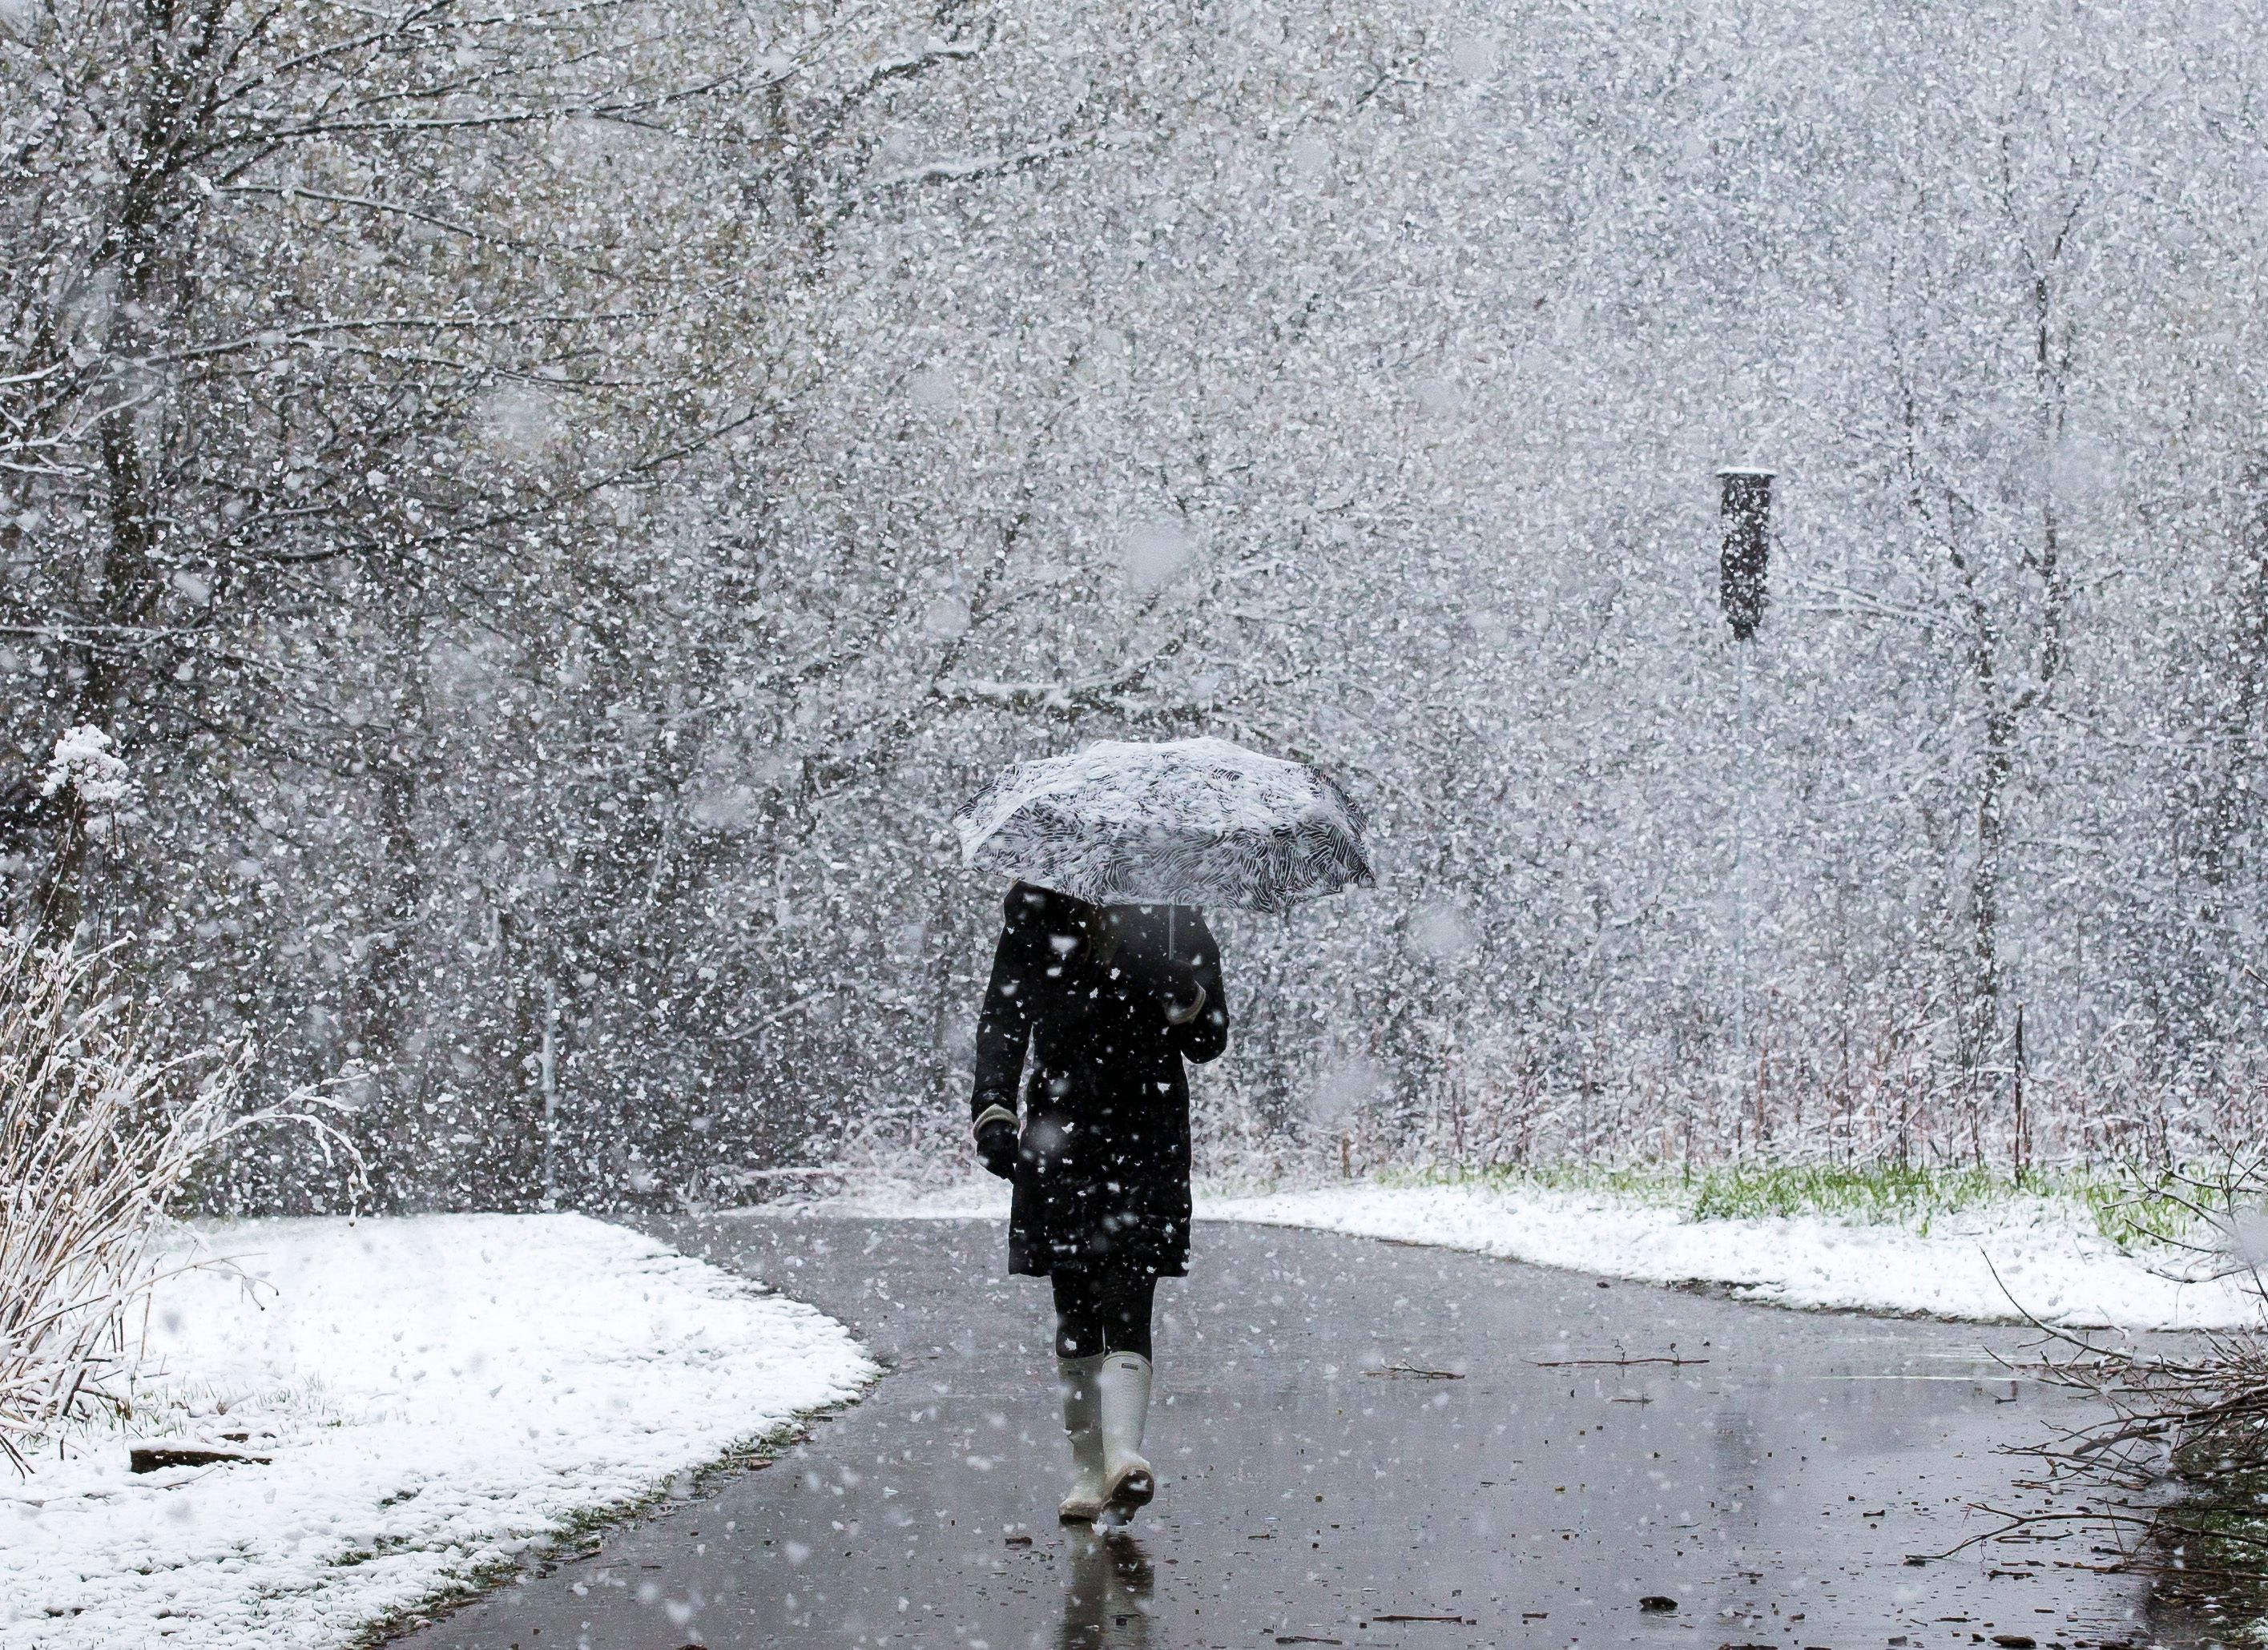 Weather: Old Man Winter holds on for another snow storm for 16 million in Chicago, Midwest